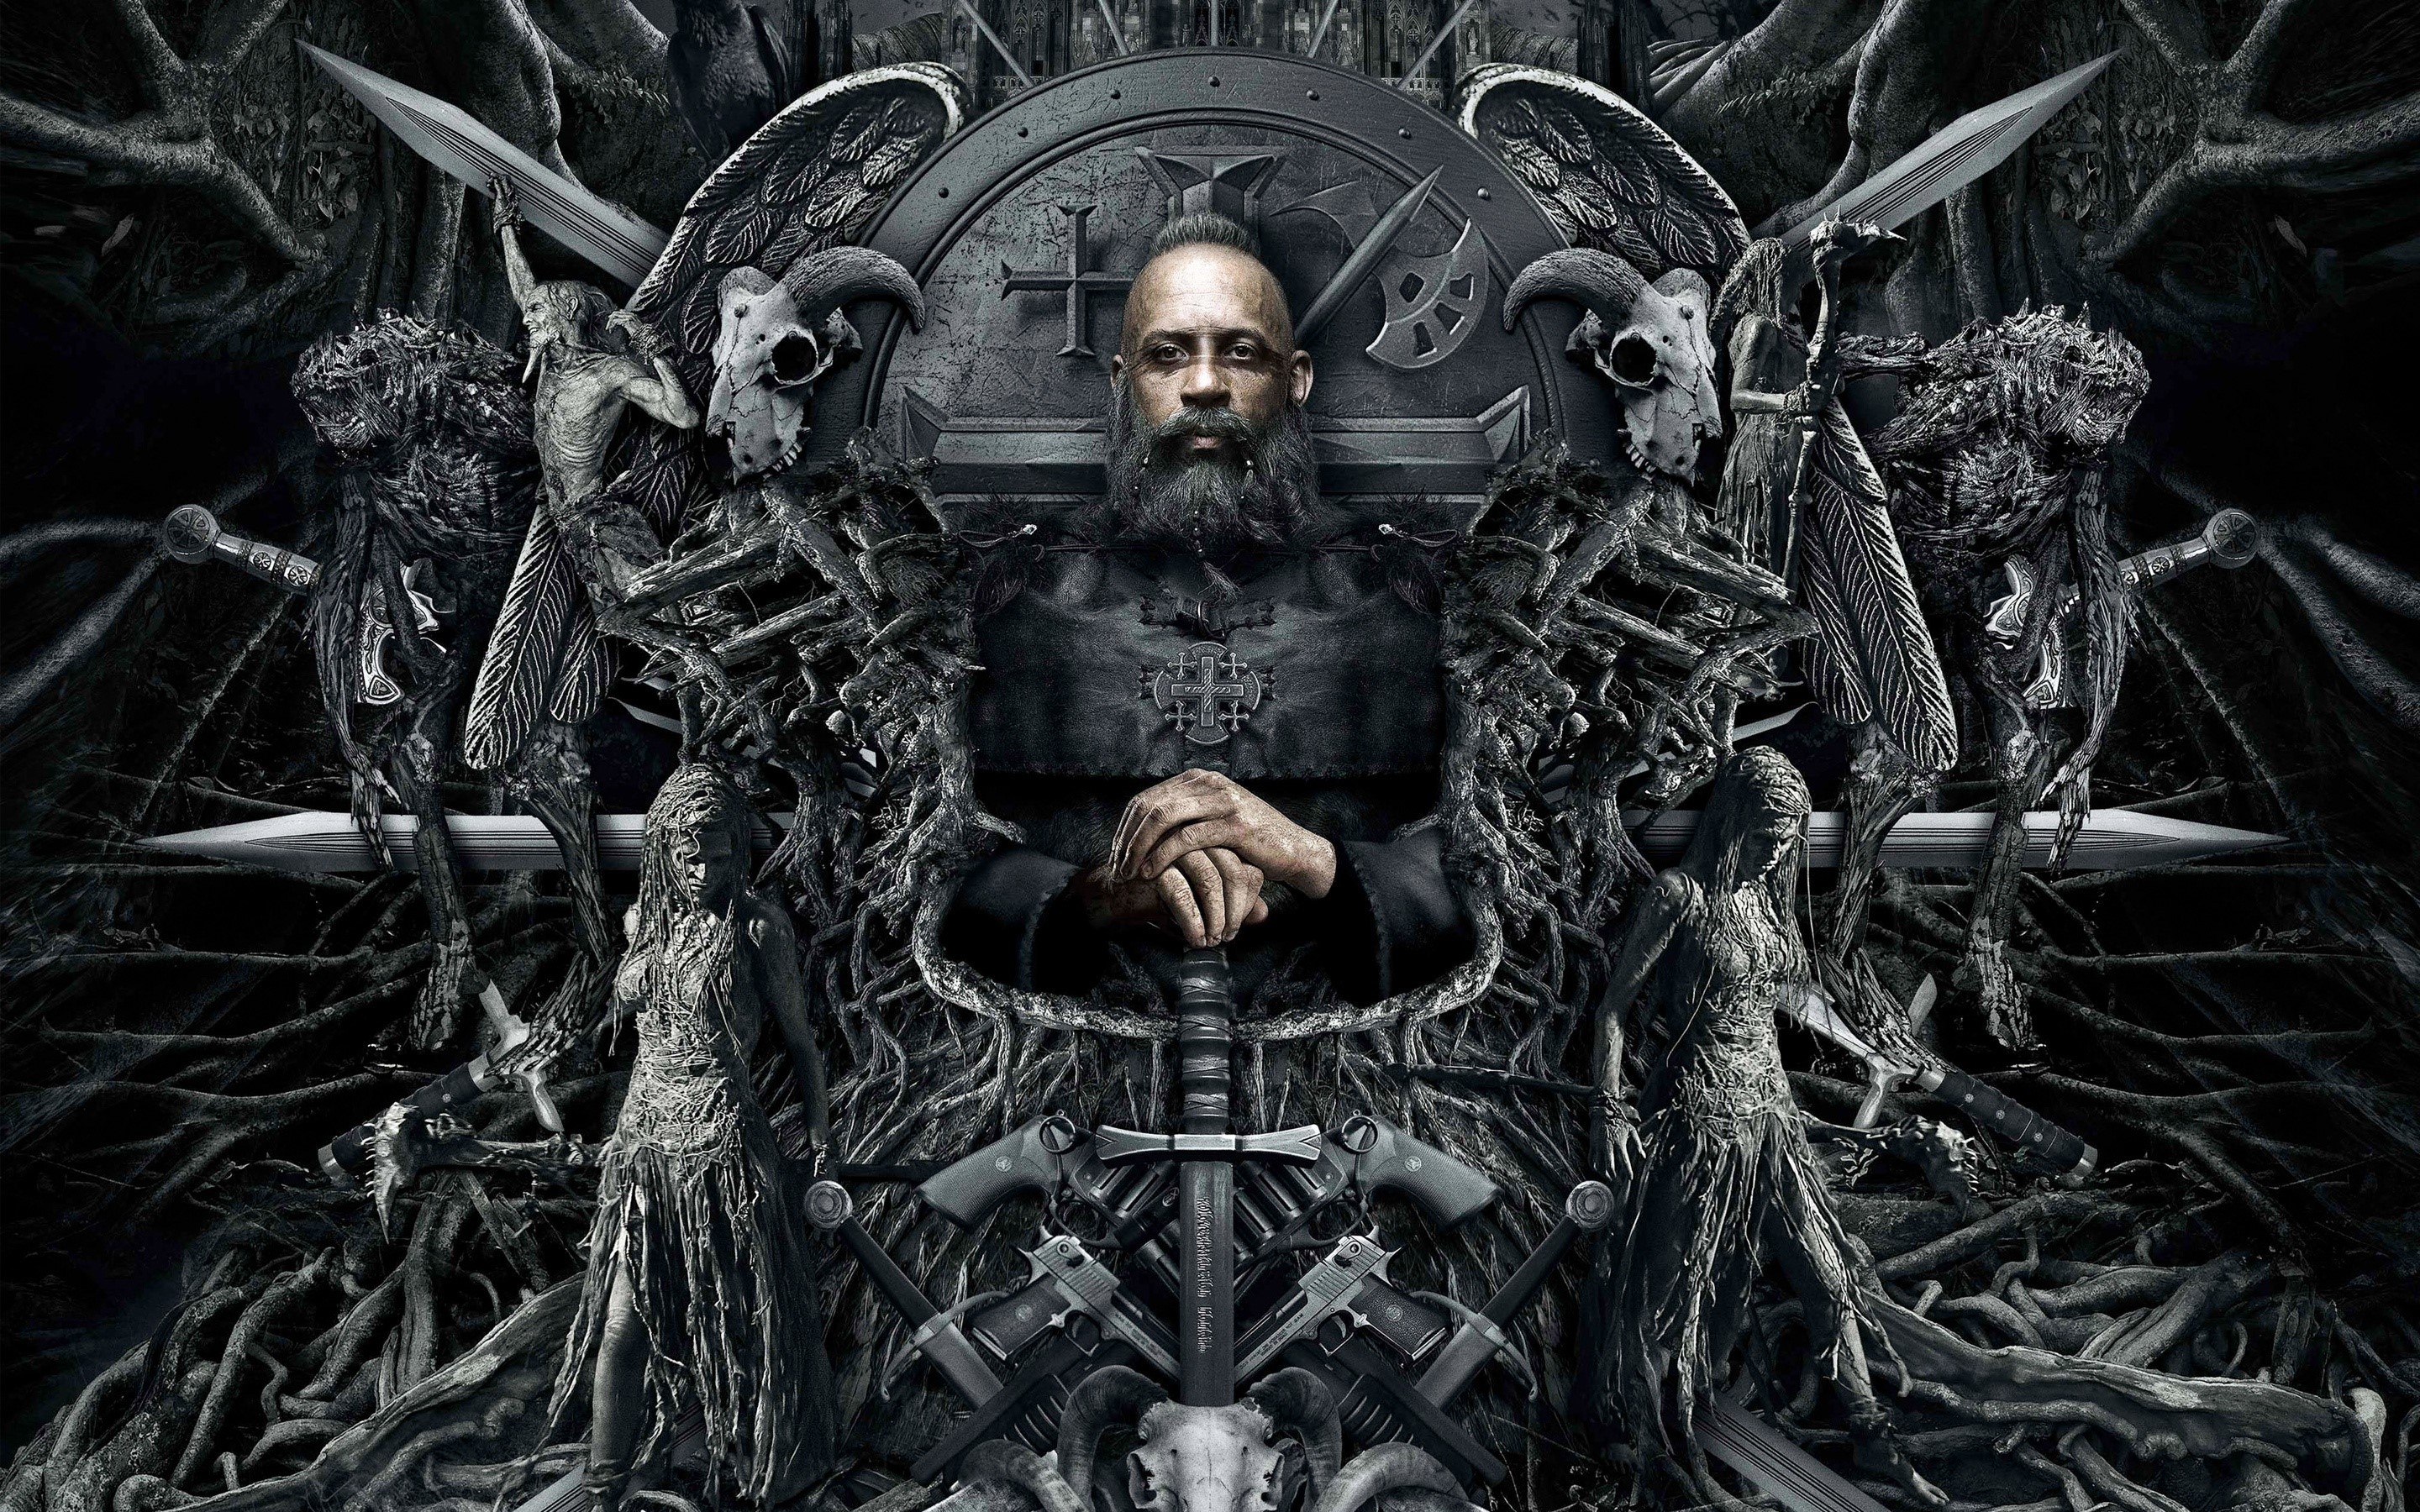 Wallpaper Diesel in The Last Witch Hunter